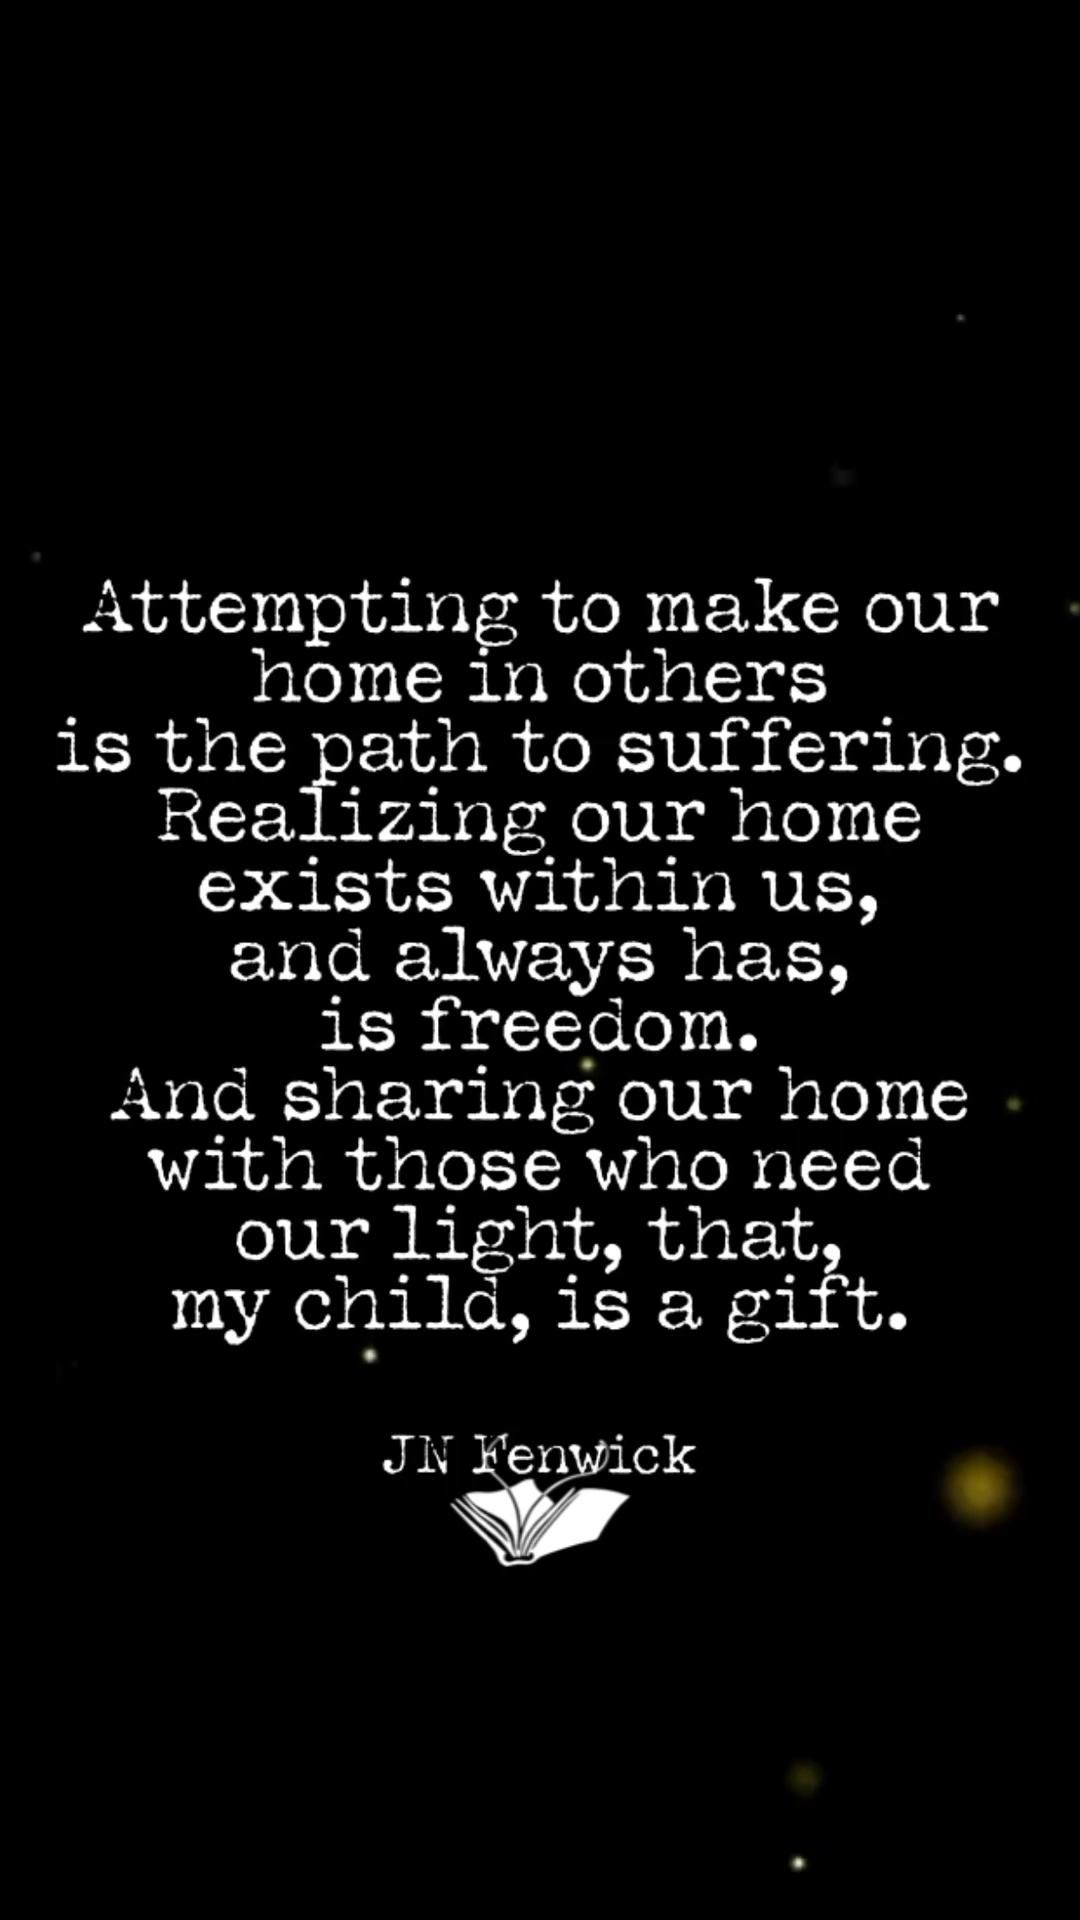 Share your light.